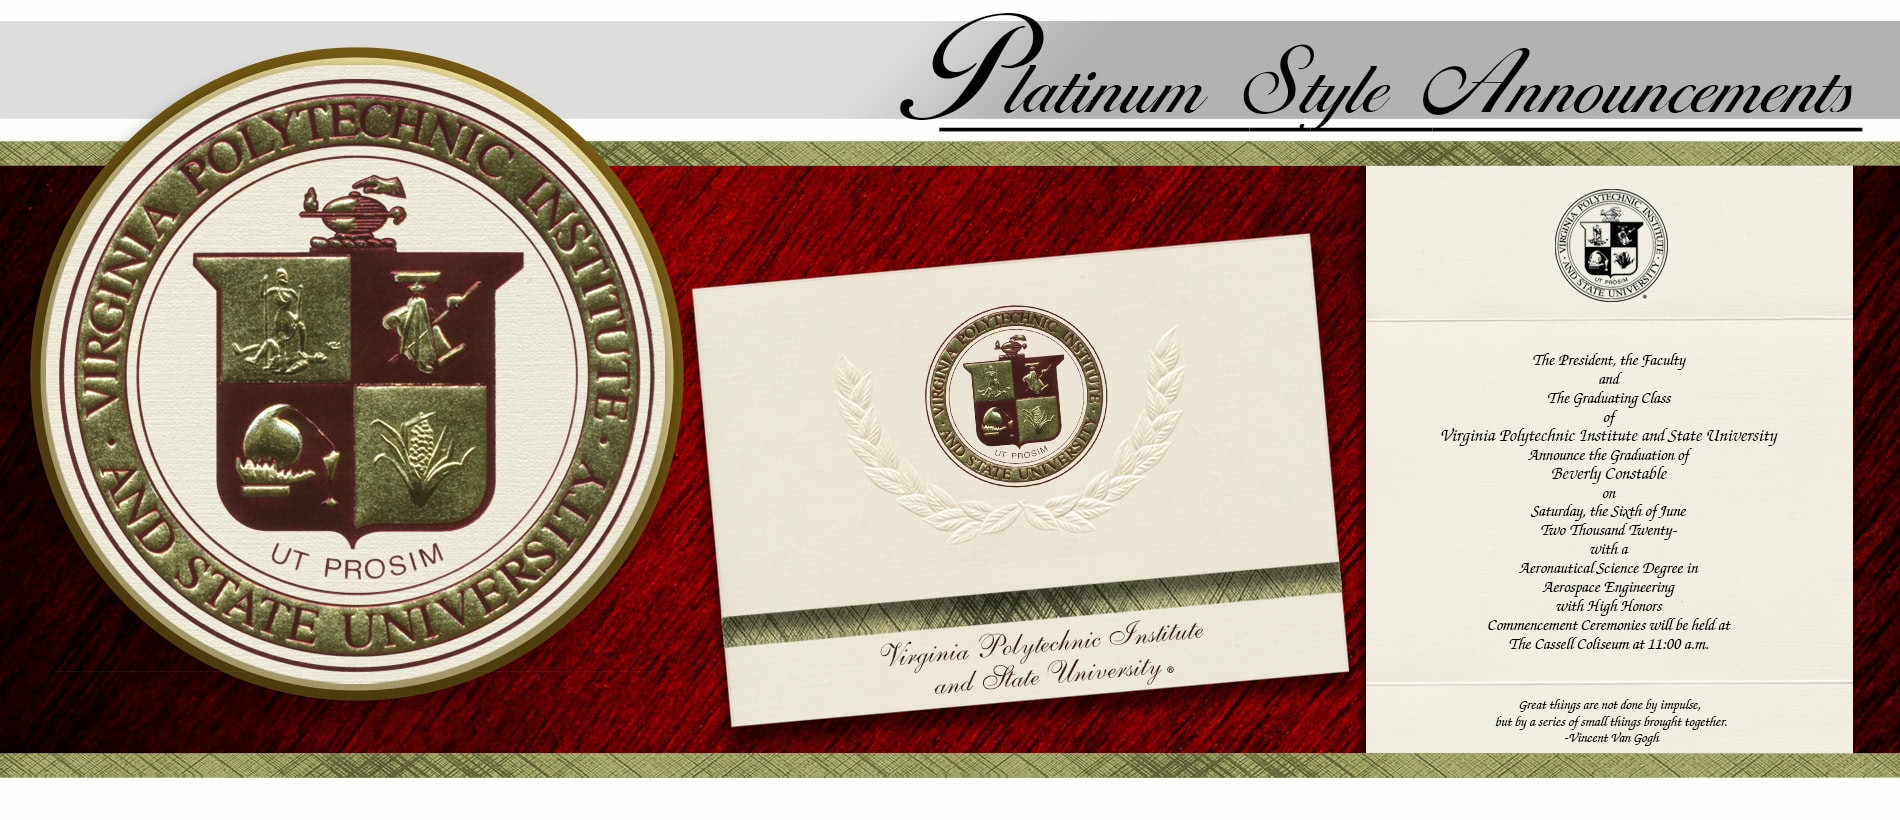 Virginia Polytechnic Institute and State University Graduation Announcements